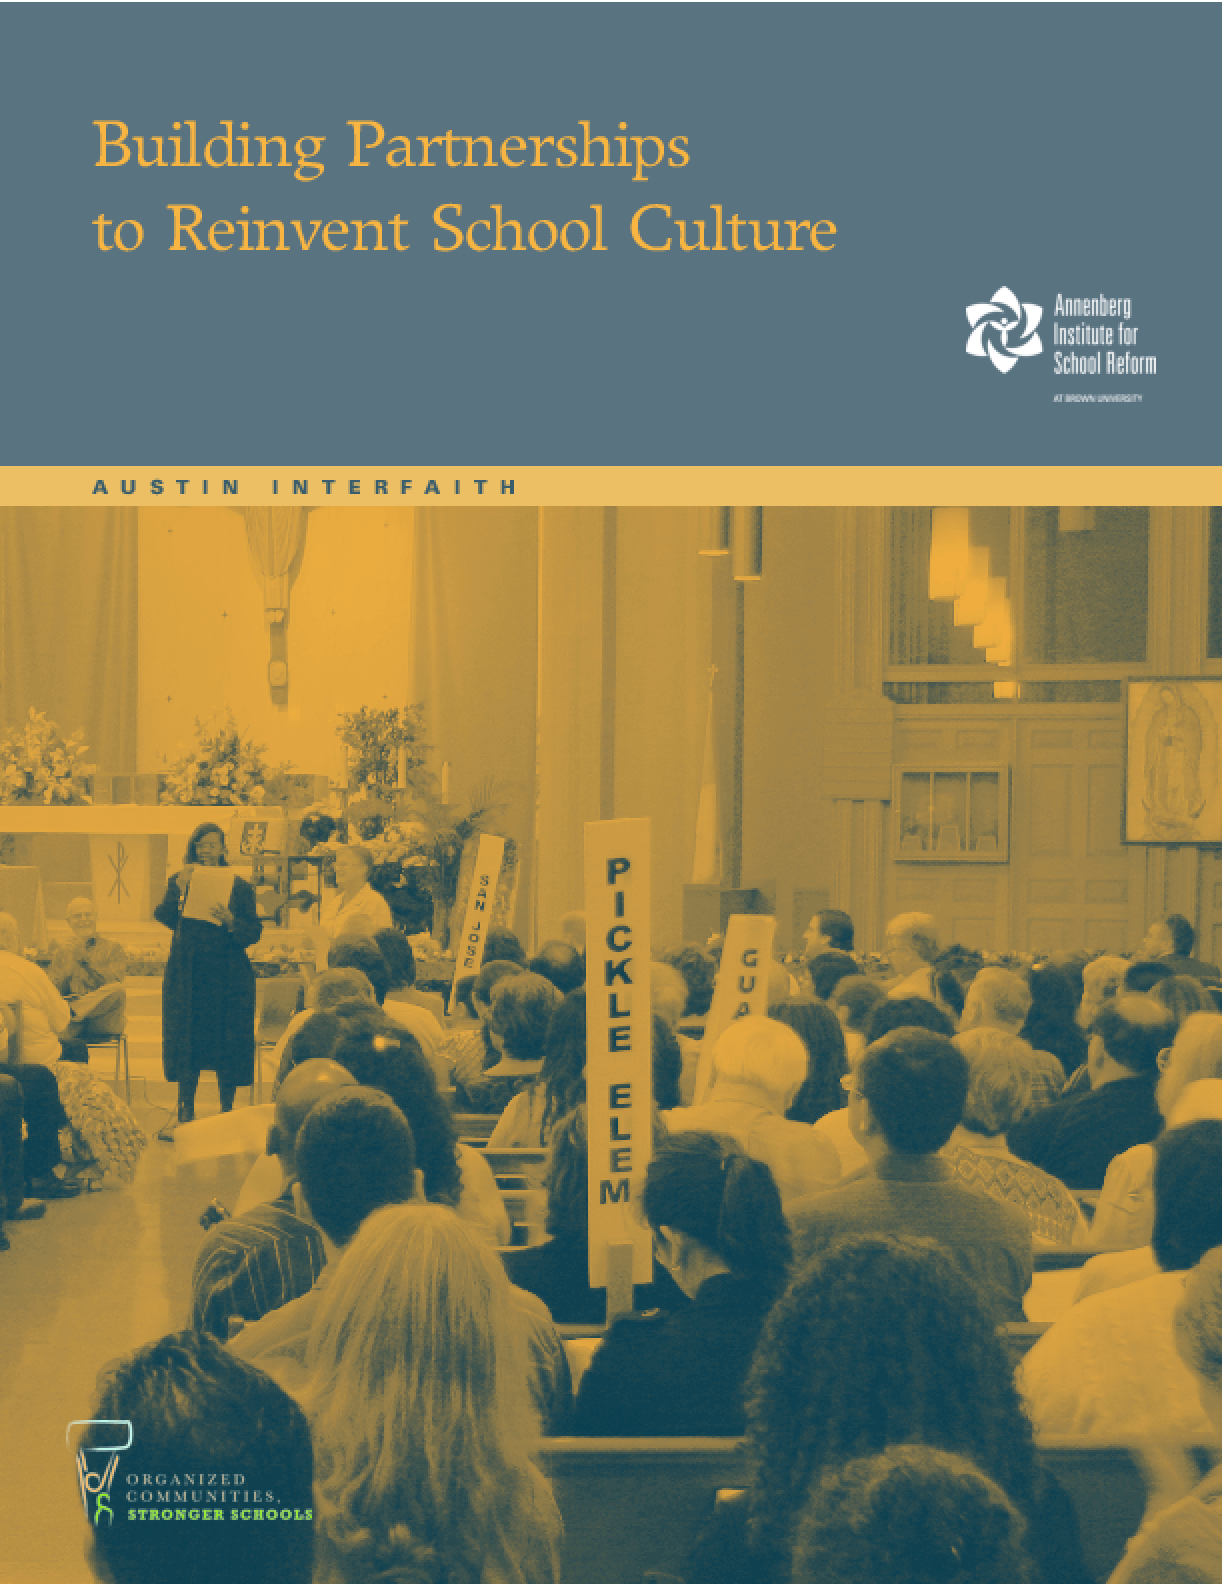 Building Partnerships to Reinvent School Culture